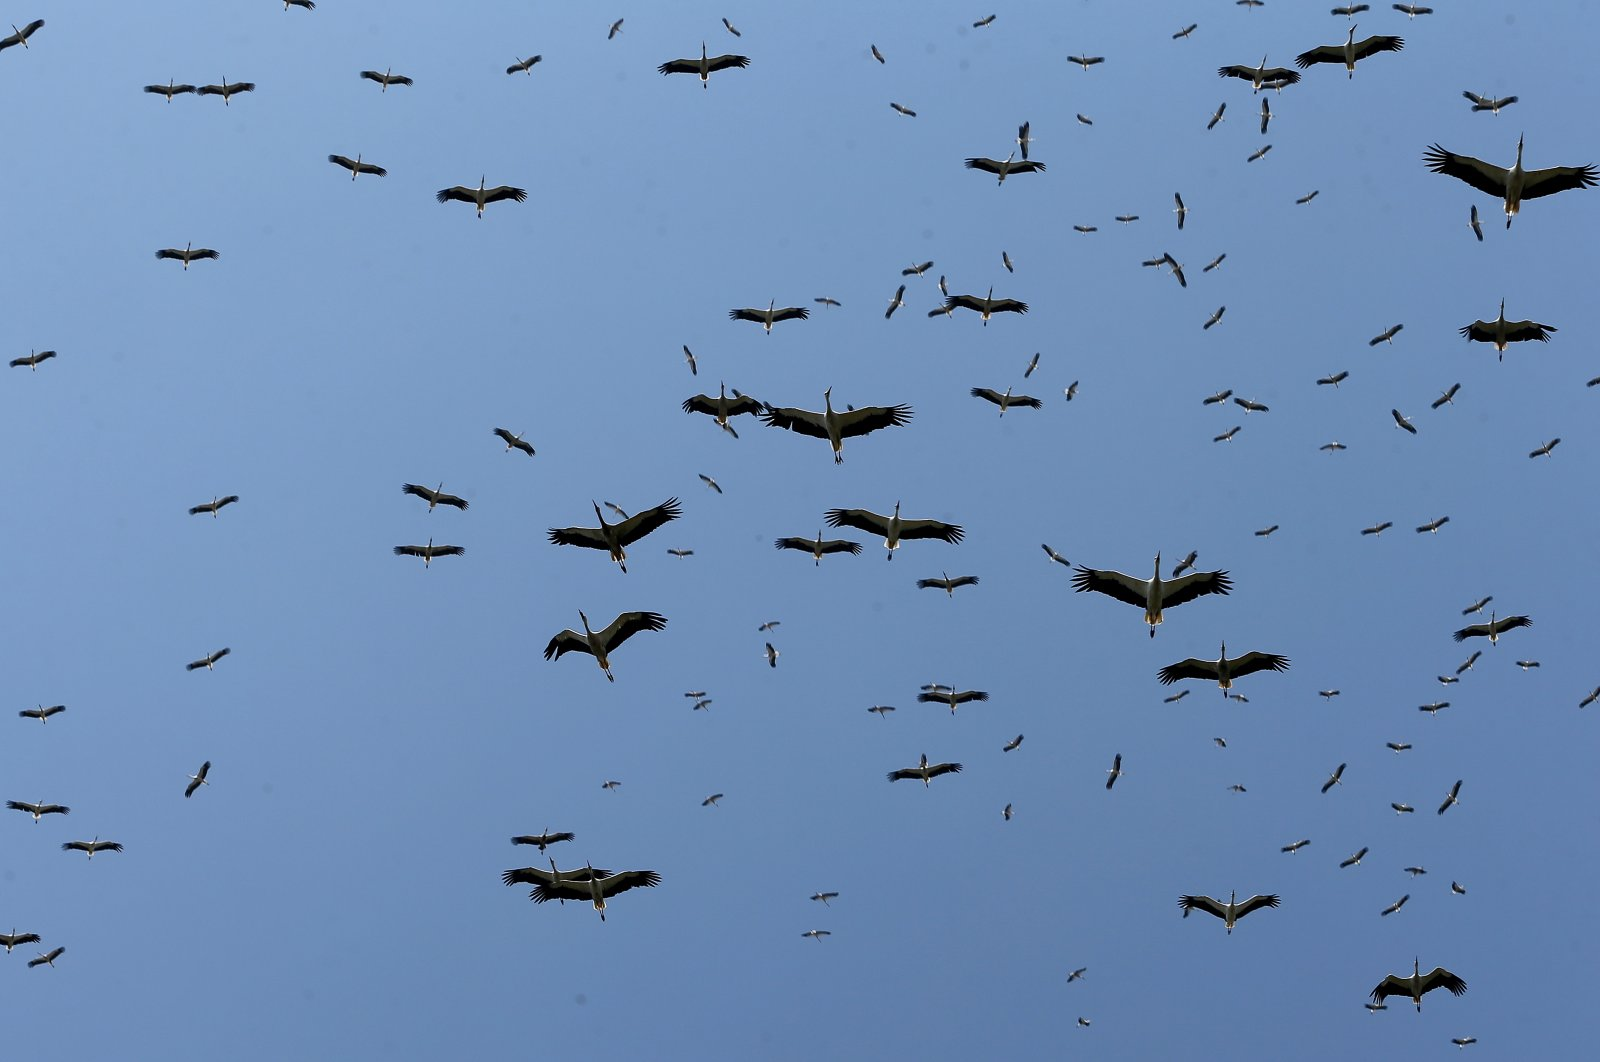 Storks flying over Istanbul, Turkey, Aug. 22, 2020. (AA Photo)